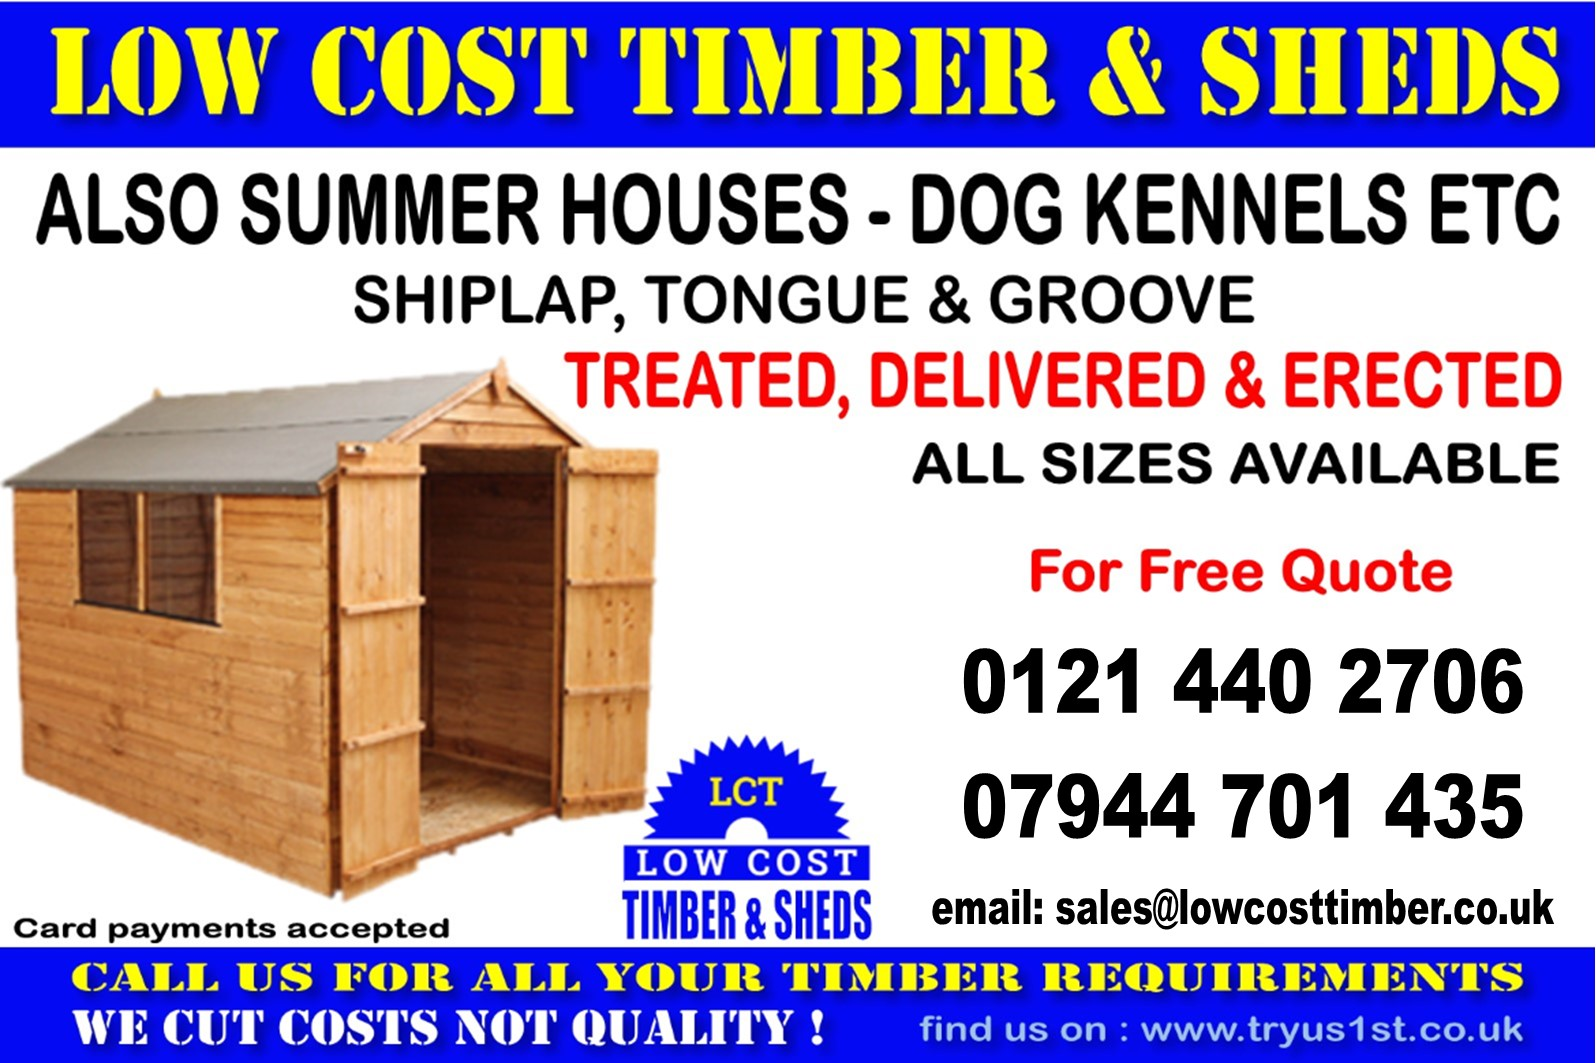 LOW COST TIMBER AND SHEDS